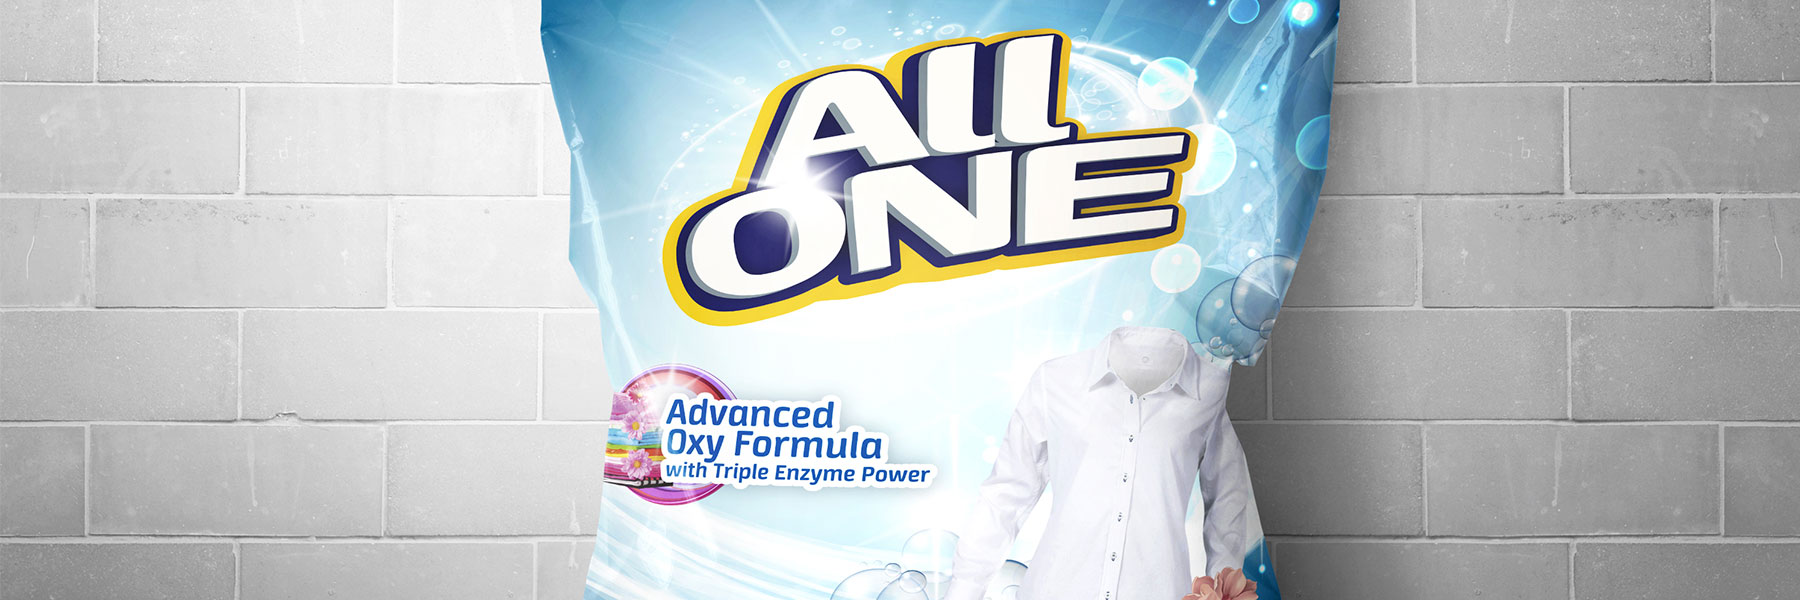 All One